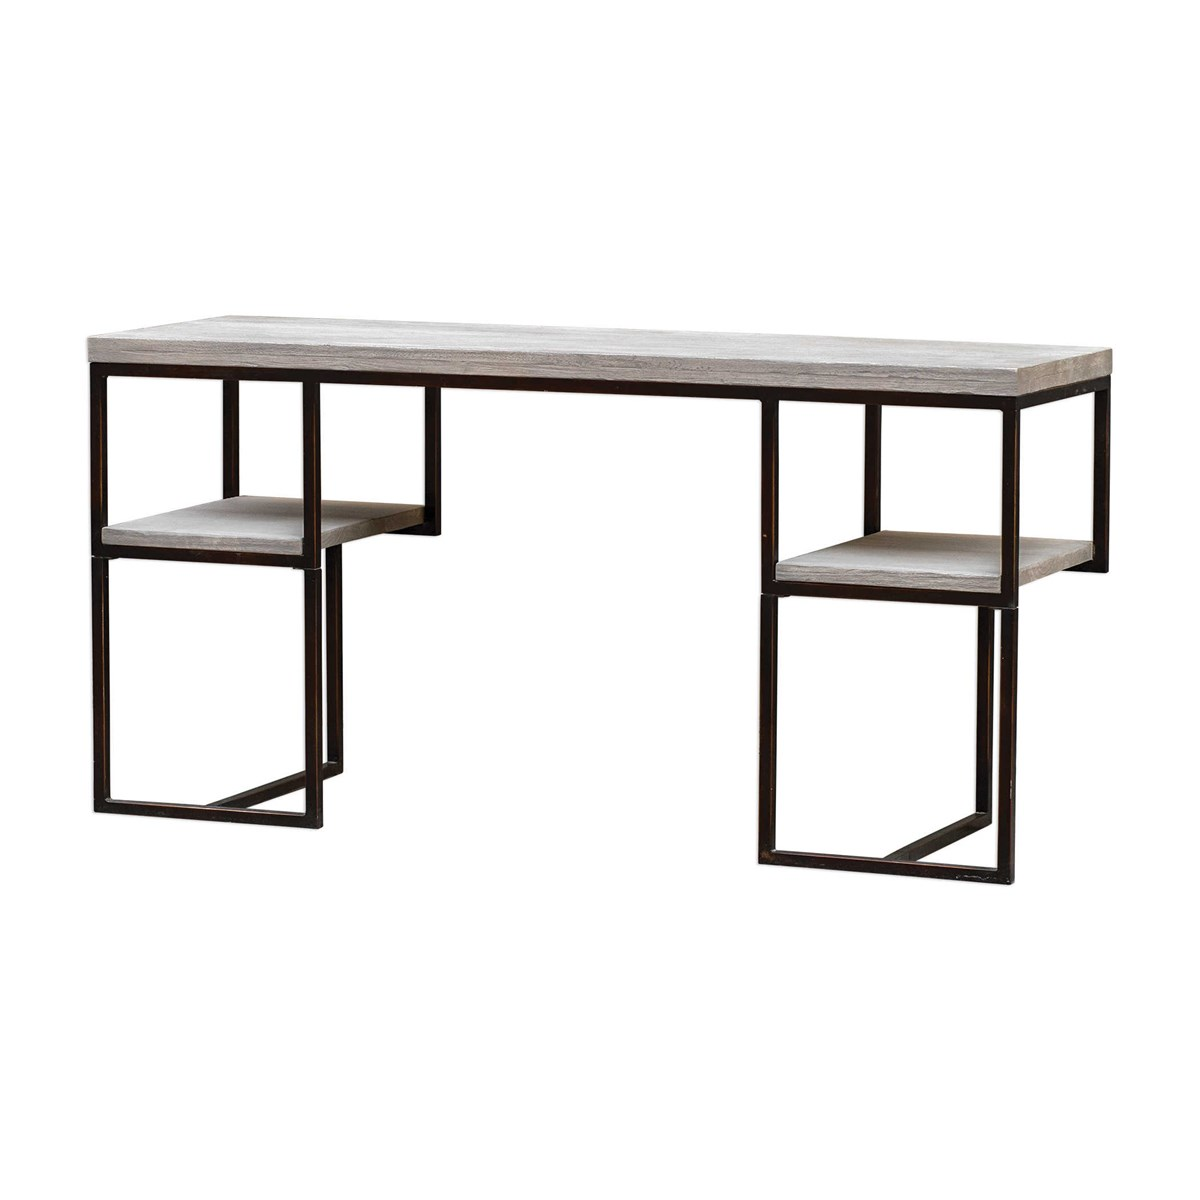 This modern writing desk features an open framed design with exposed display shelving, with mahogany wood surfaces in a warm latte finish, paired with antique bronze finished iron. Designer: Billy Moon Dimensions: 58 W X 29 H X 18 D (in) Weight: 66